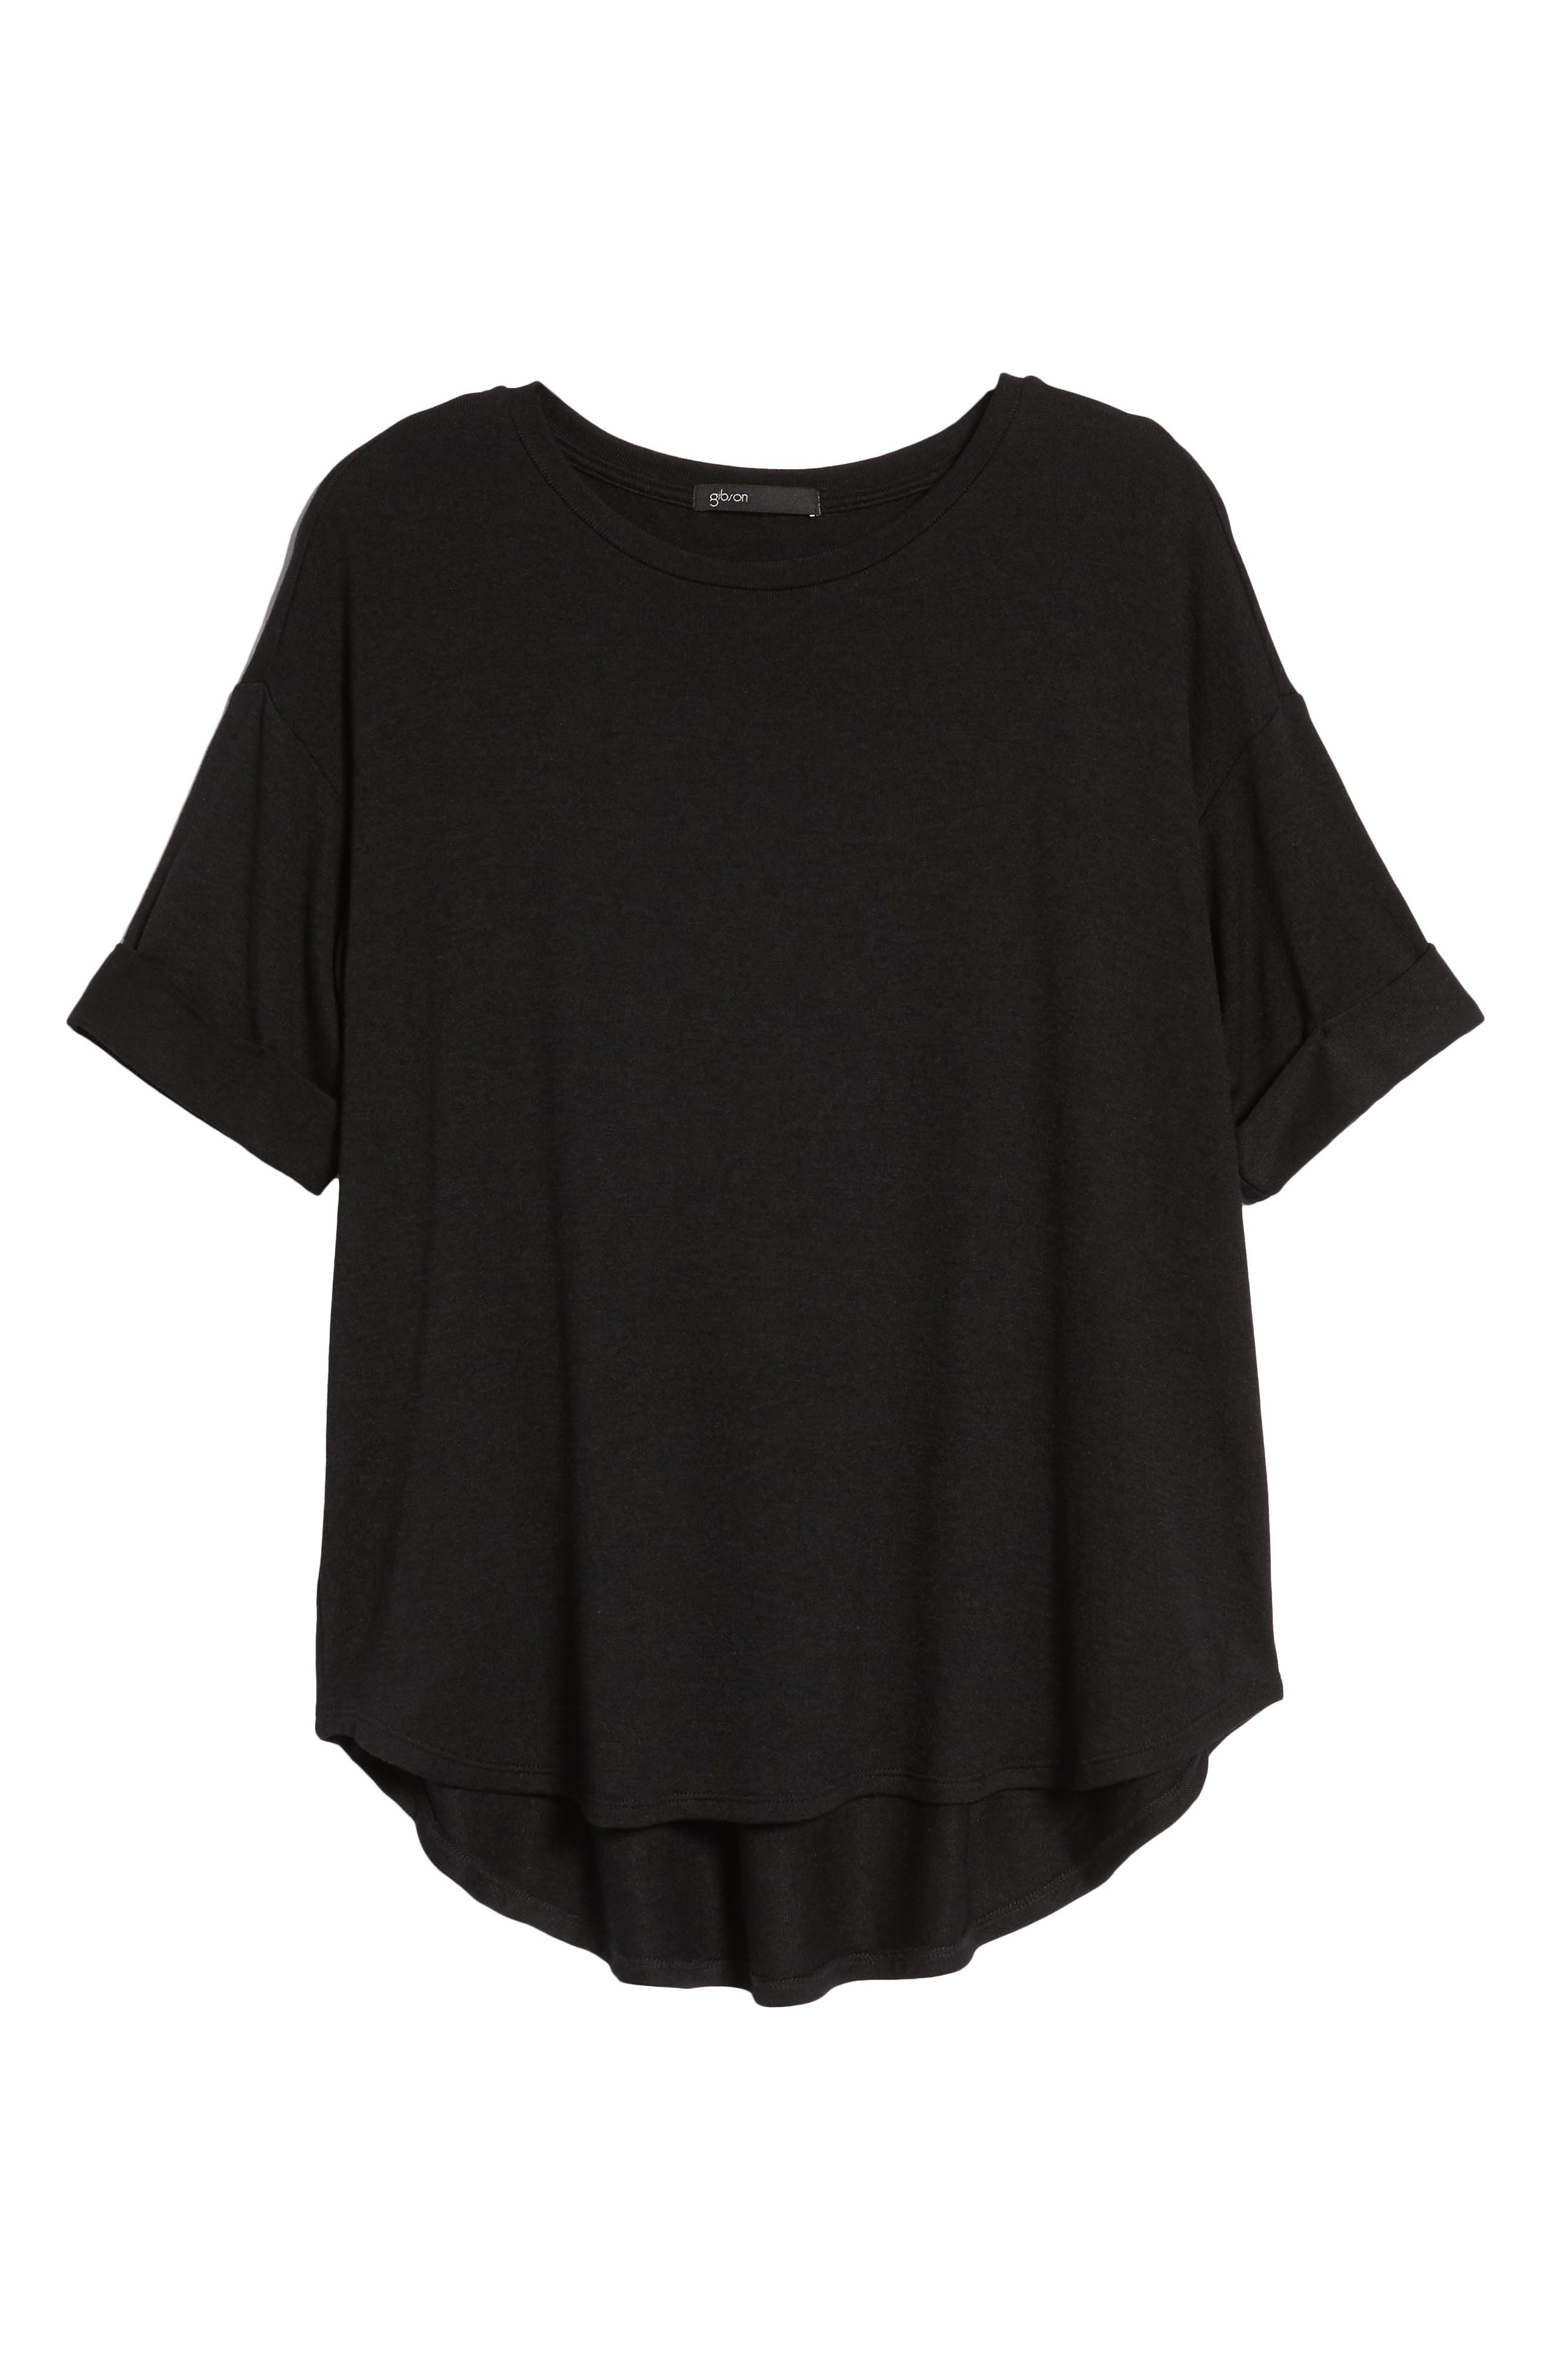 High/Low Short Sleeve Top,                             Alternate thumbnail 7, color,                             001